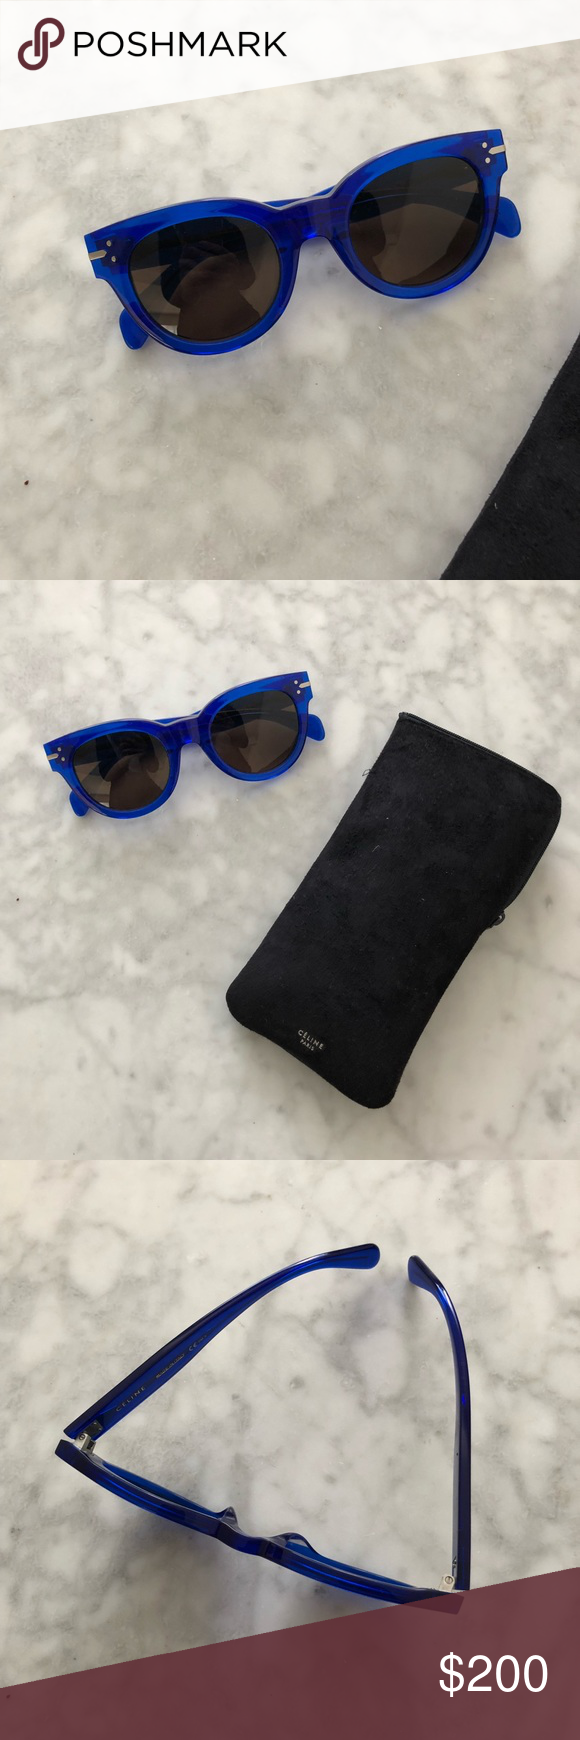 64a947a12bd7e Celine New Butterfly Sunglasses 41040  NEW  Brand new! Céline new butterfly  sunglasses! Blue! 41040! 50mm! 100% authentic! 🚫NO TRADES🚫 Celine  Accessories ...